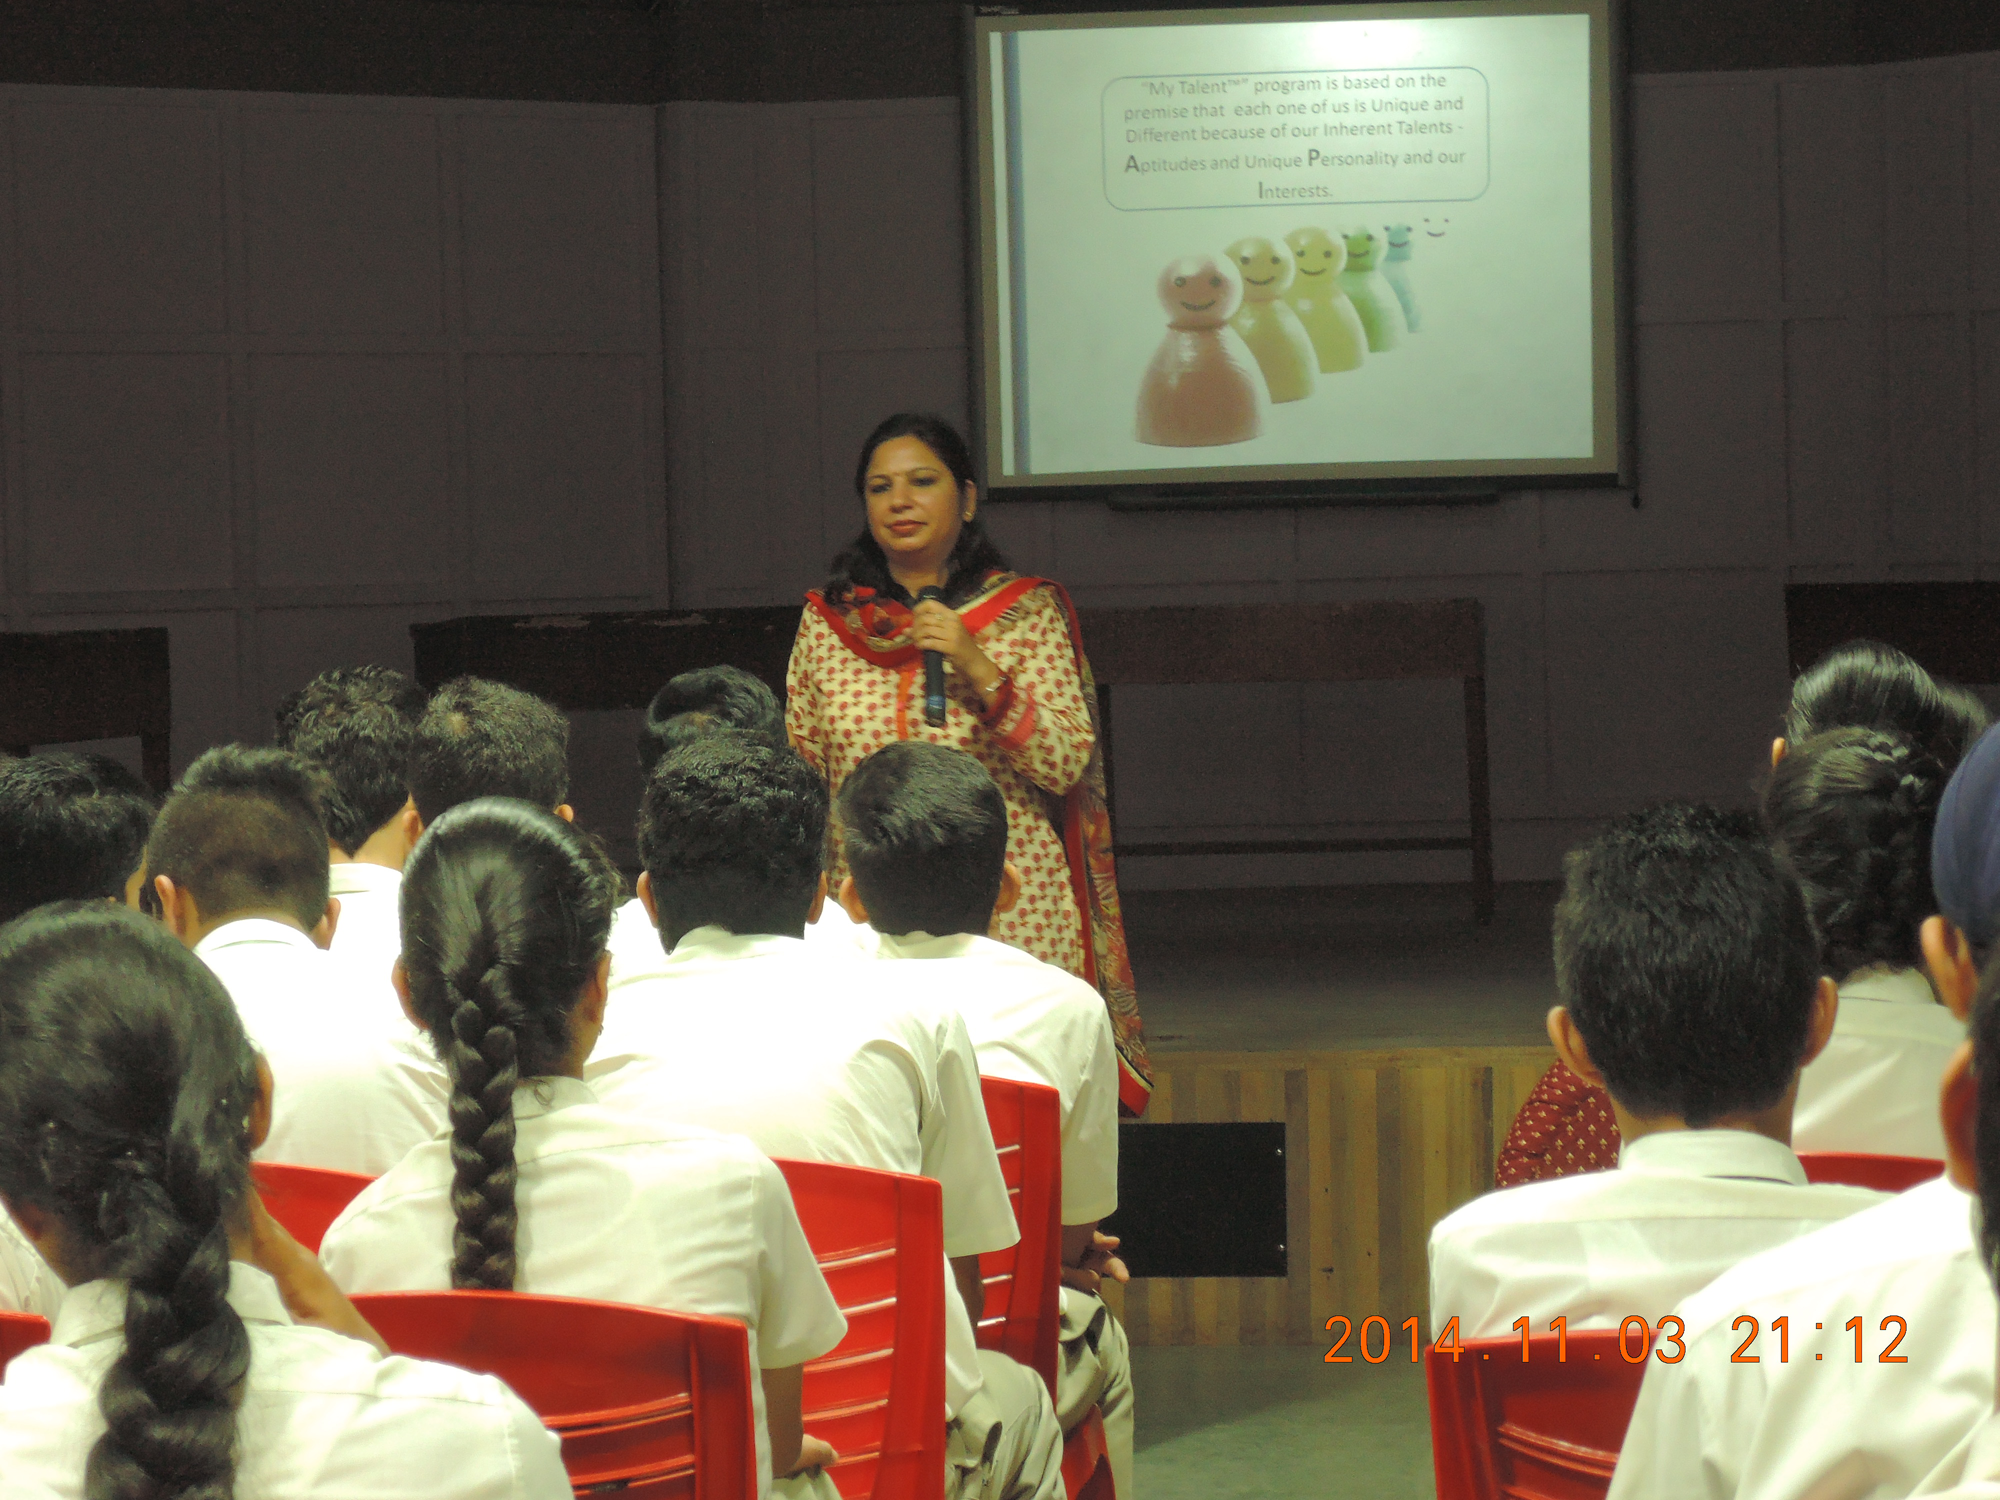 online aptitude test personality assessment expert career dr anubhuti at the career orientation session at chandigarh